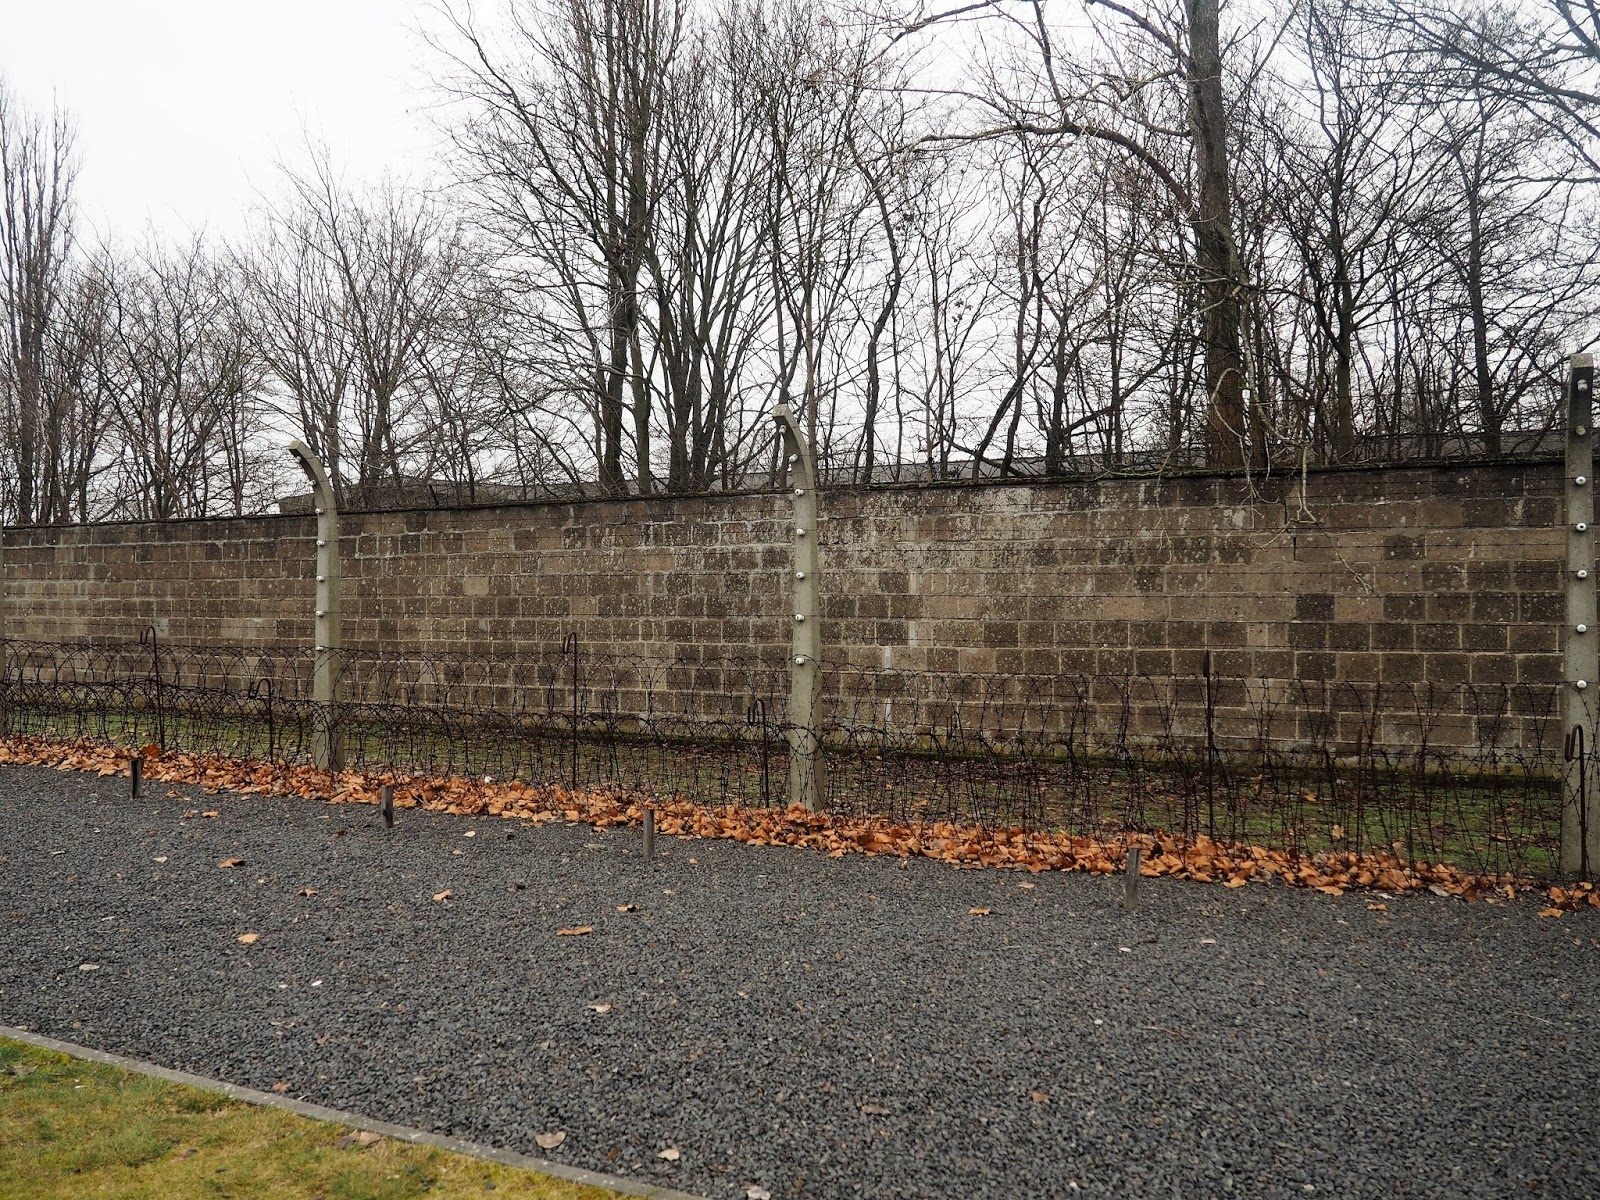 Sachsenhausen Concentration Camp barbed wire fence